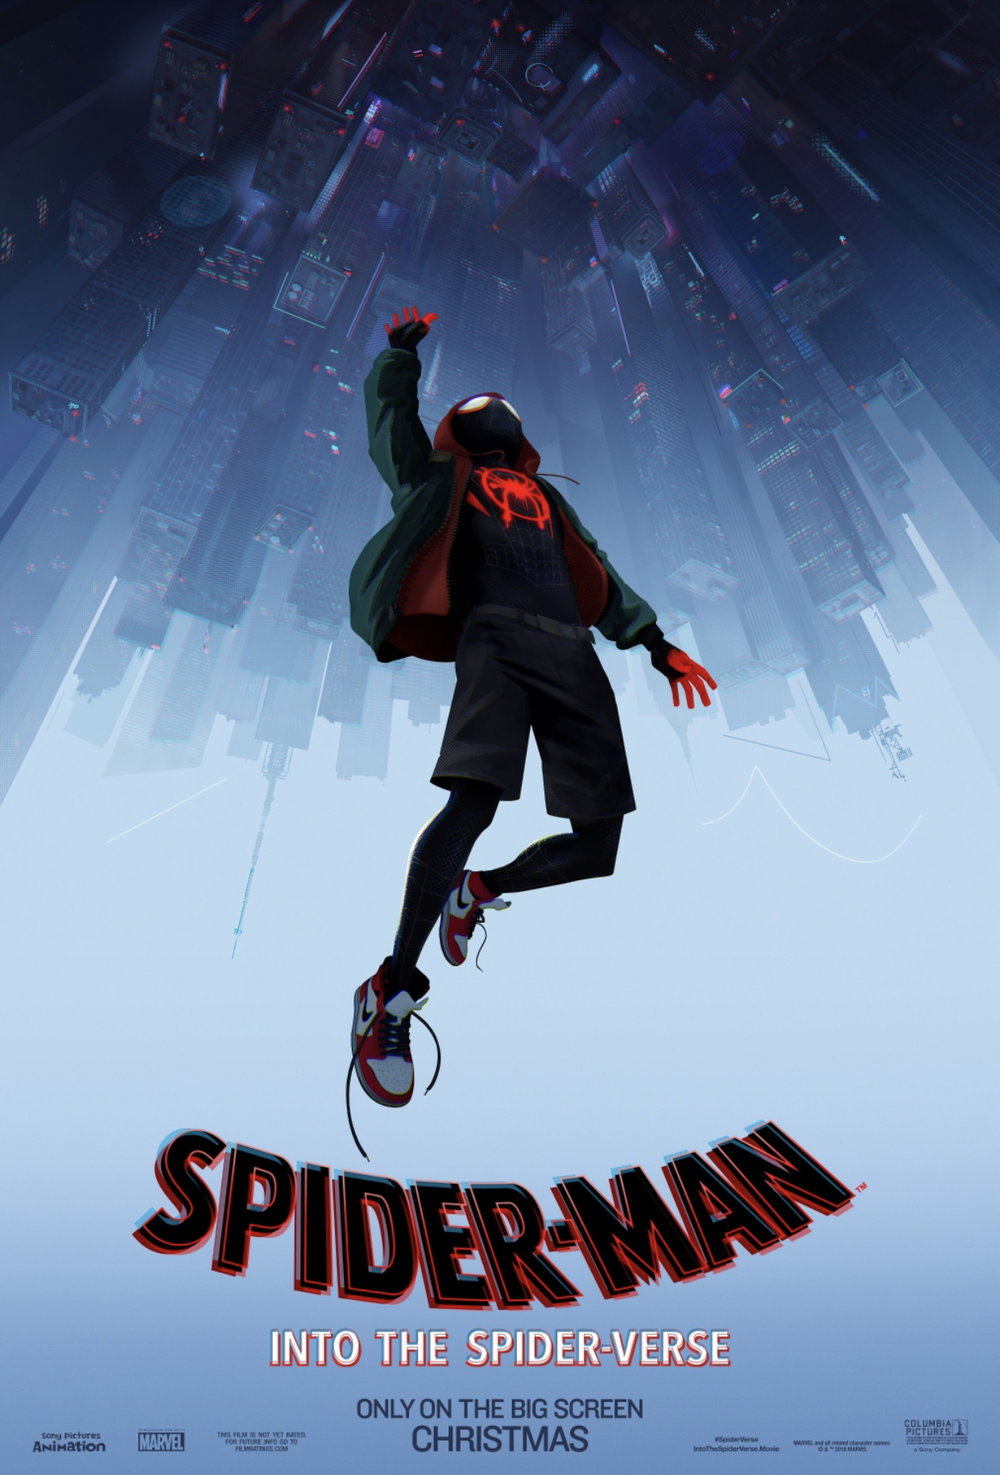 Spiderman-into-spiderverse-3d-movie-review.JPG